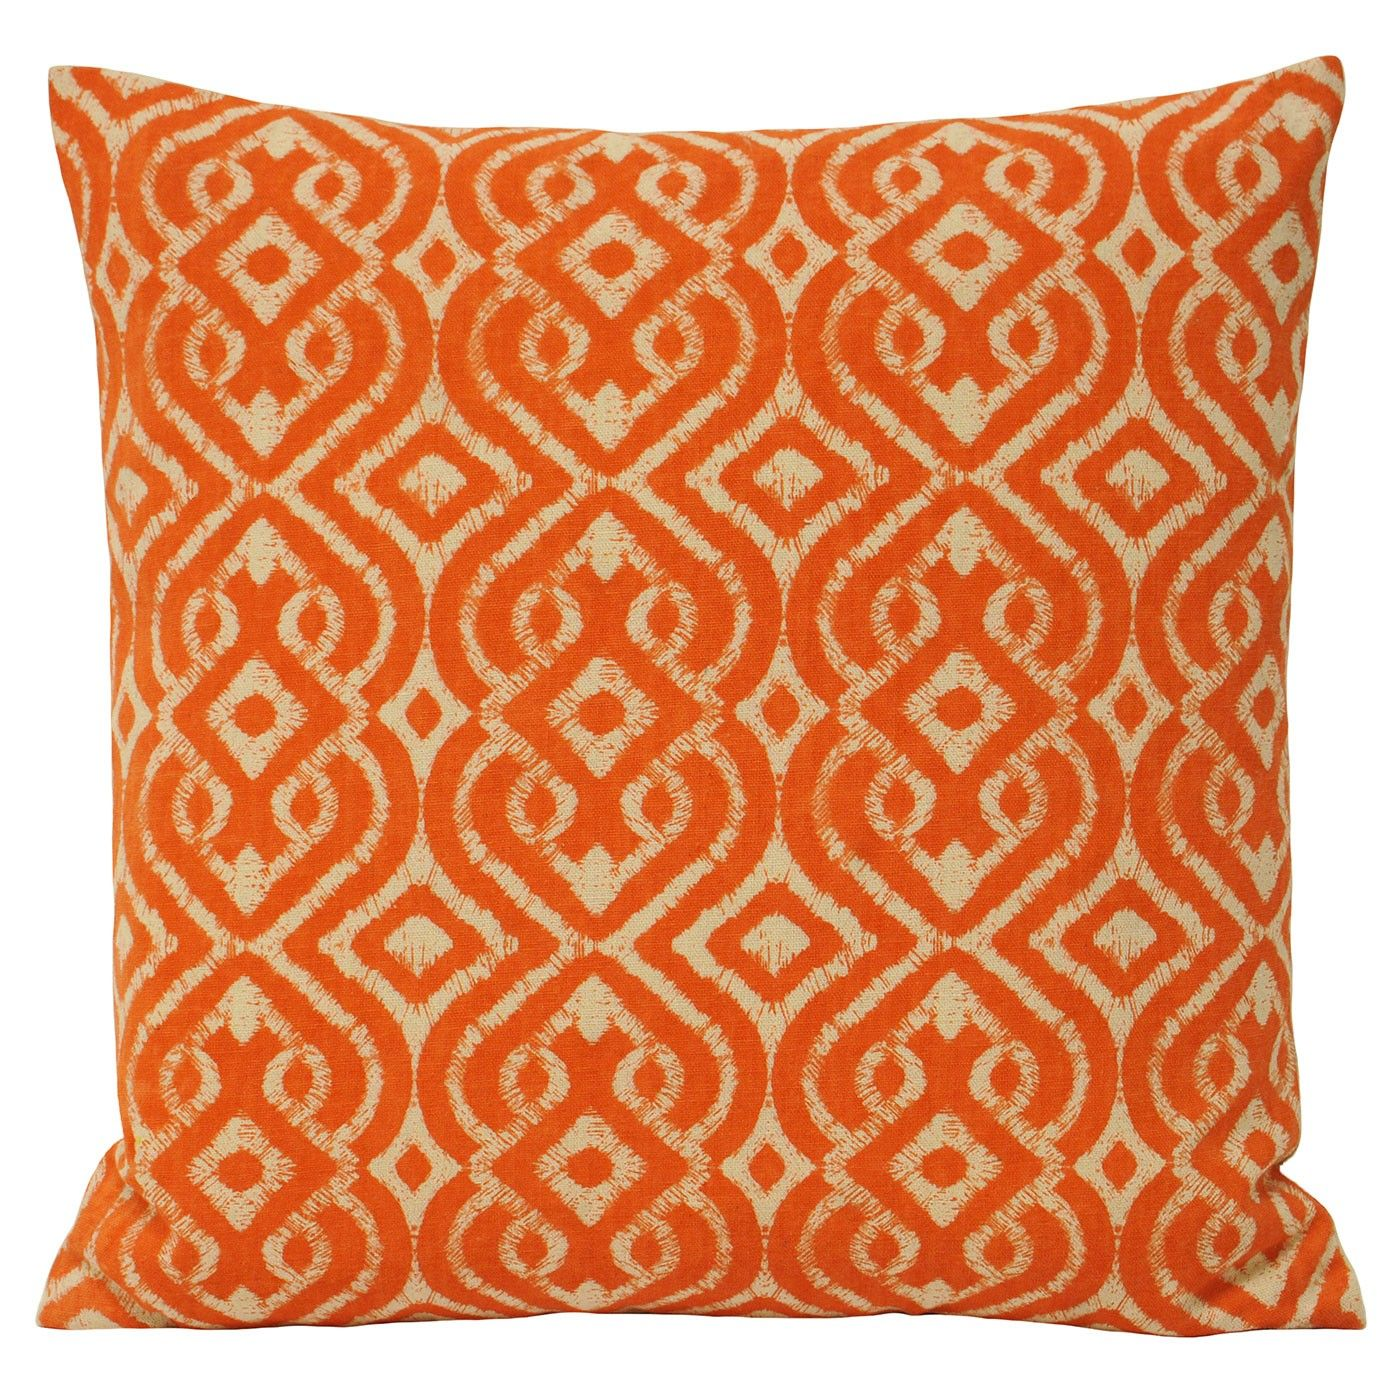 Energetic and colourful the riva home mono luca cushion uses a